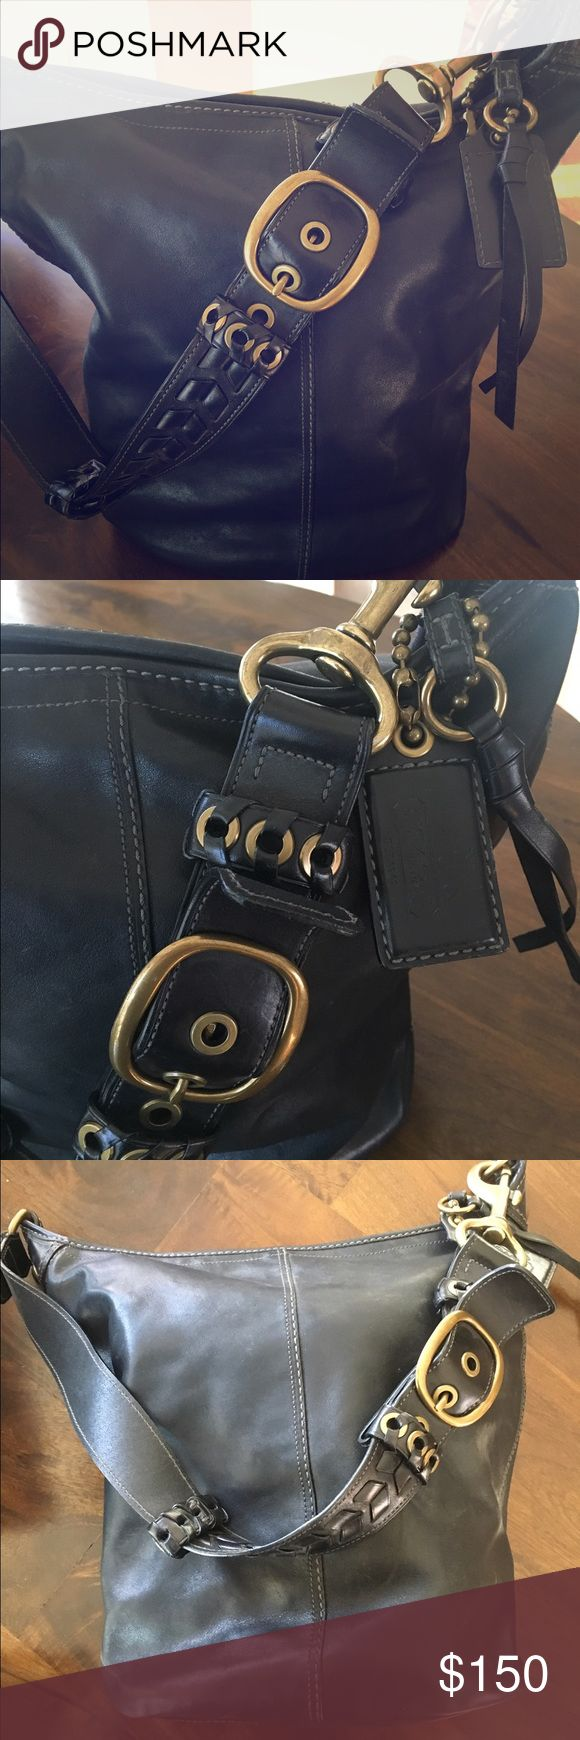 Coach Hobo Bag This Coach Hobo bag with be your favorite accessory! You can cary an incredible amount and still look fashionable. Coach Bags Hobos